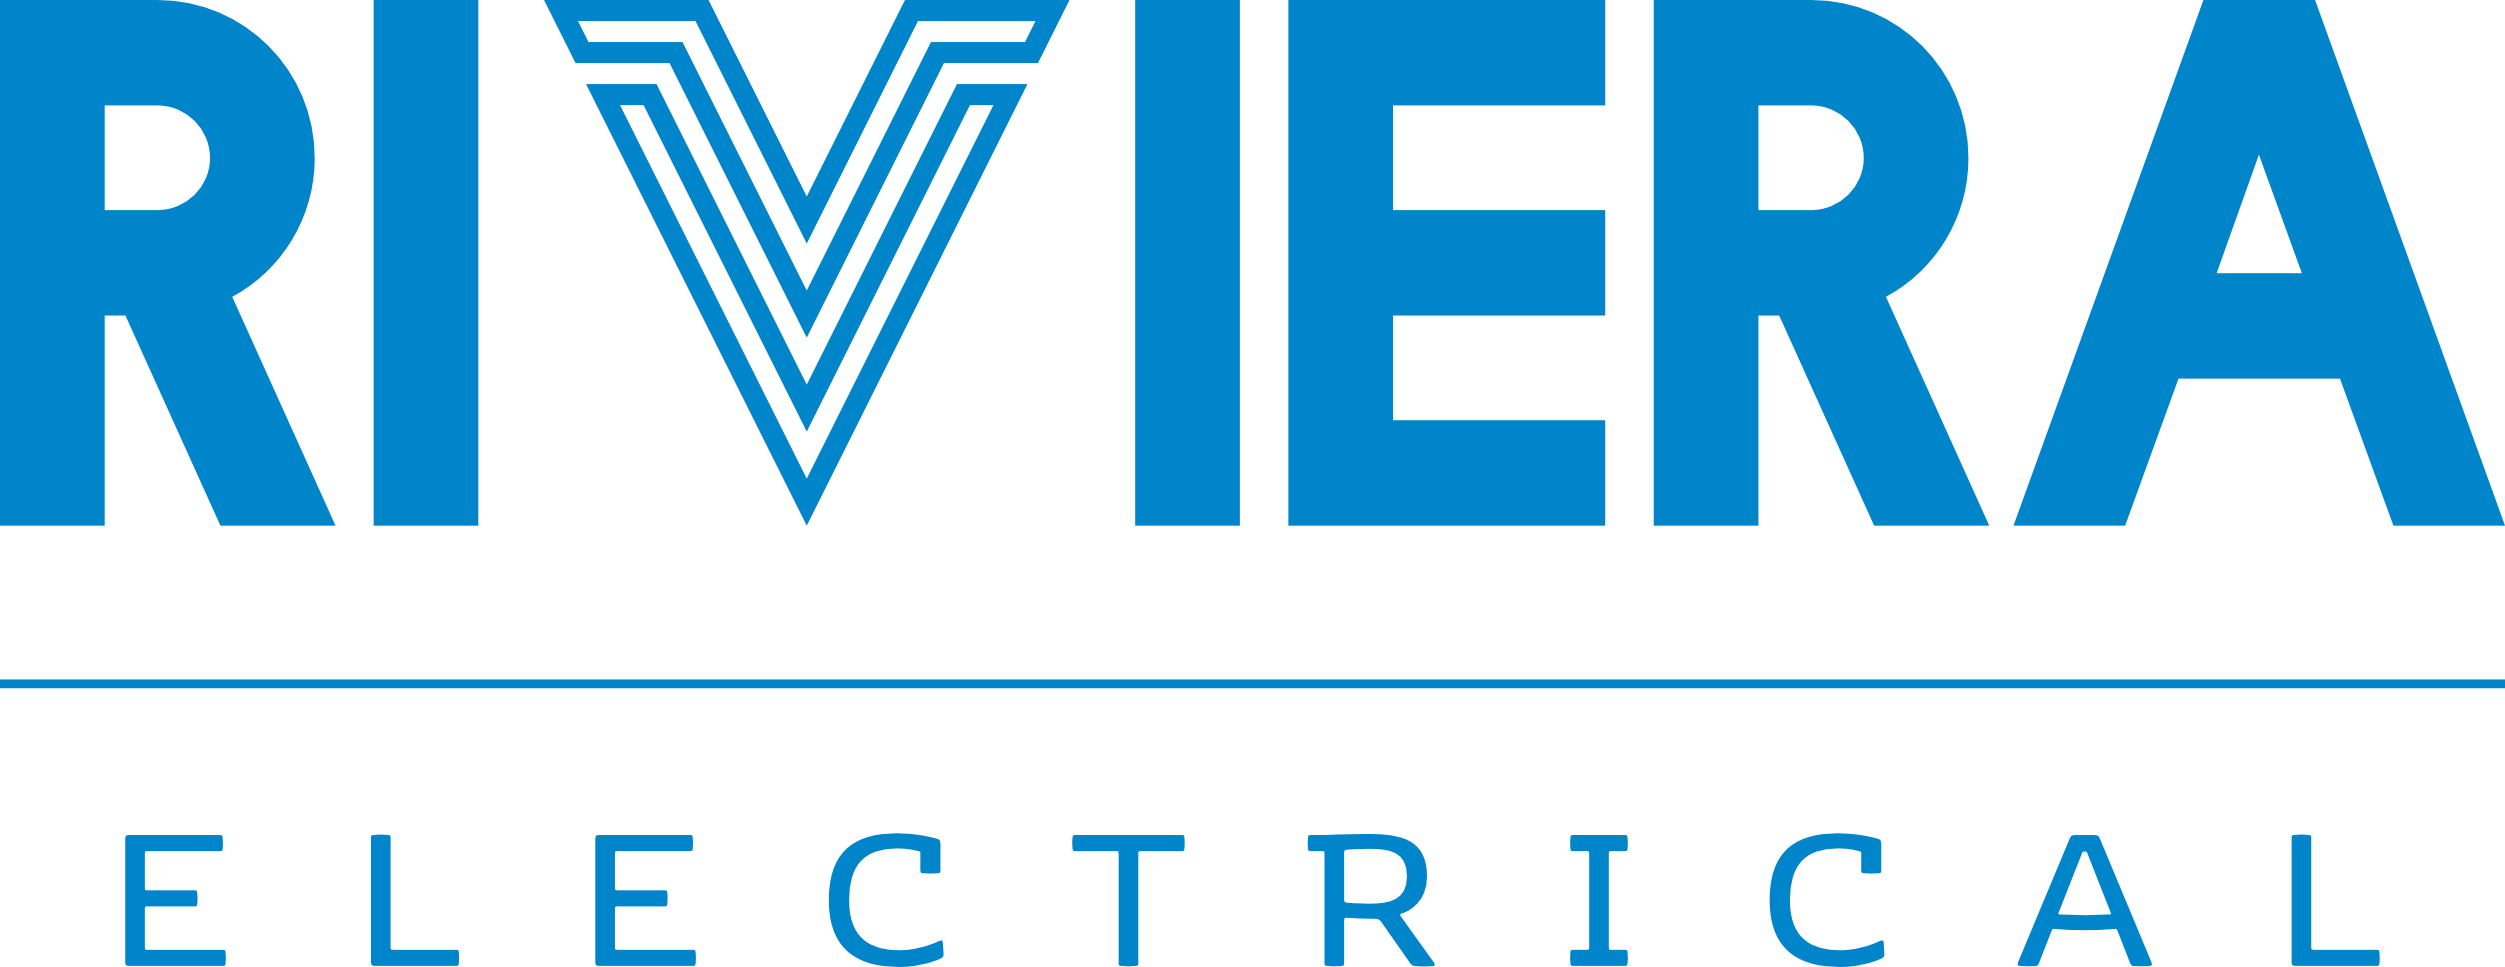 Riviera Electrical